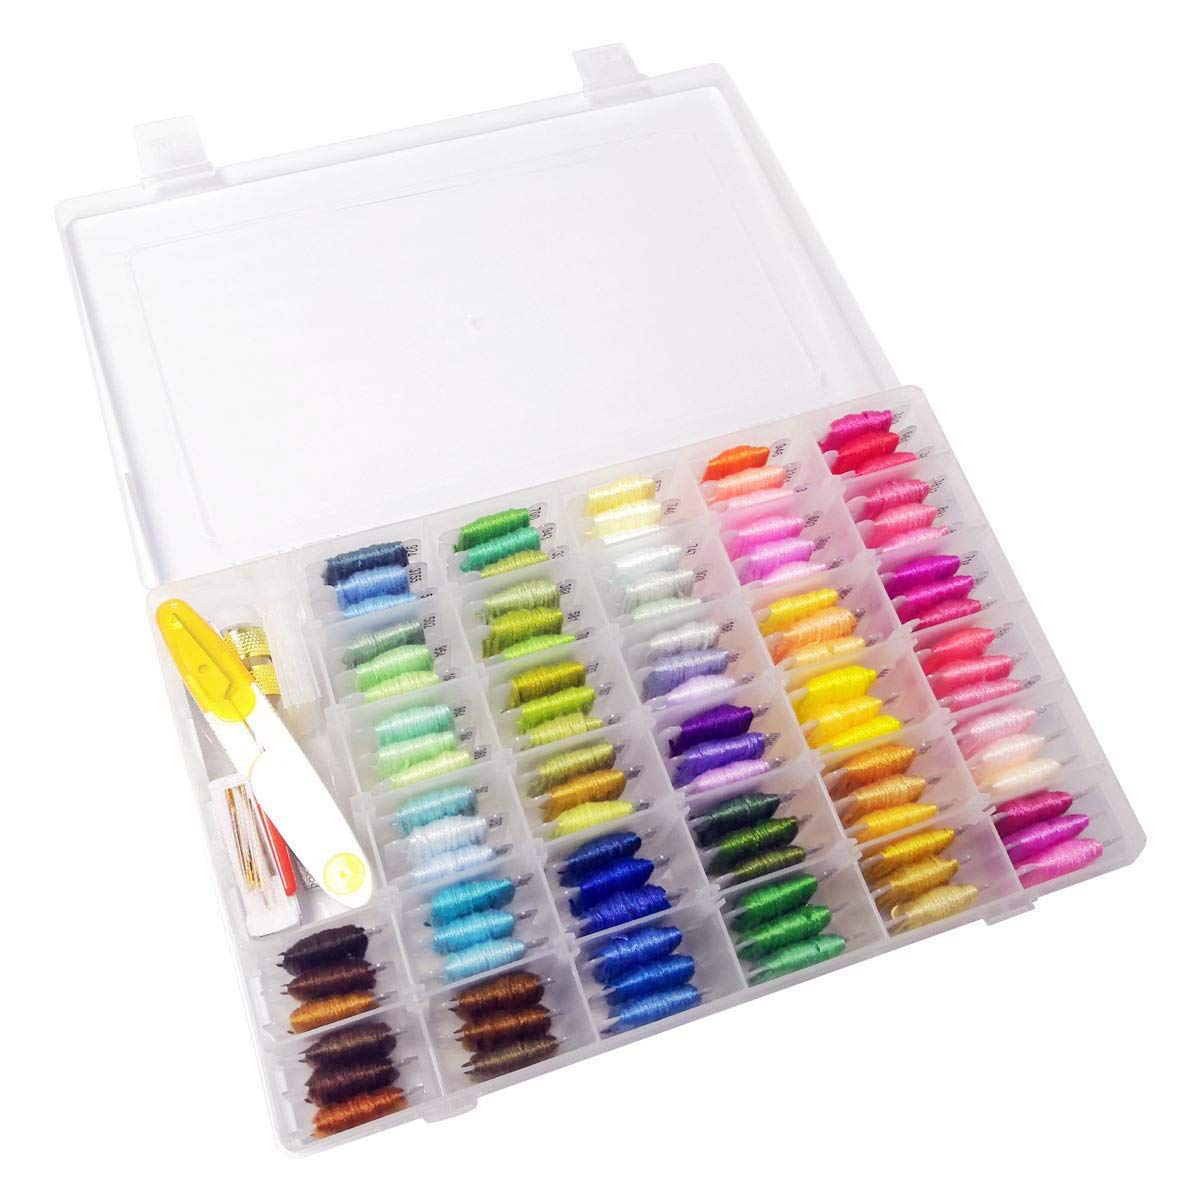 Embroidery Floss Cross Stitch Threads - WeeDee 100 Colors Friendship Bracelets Floss with Organizer Storage Box Embroidery Thread Bracelet String Embroidery Kit 43 Pcs Cross Stitch Tools by WeeDee